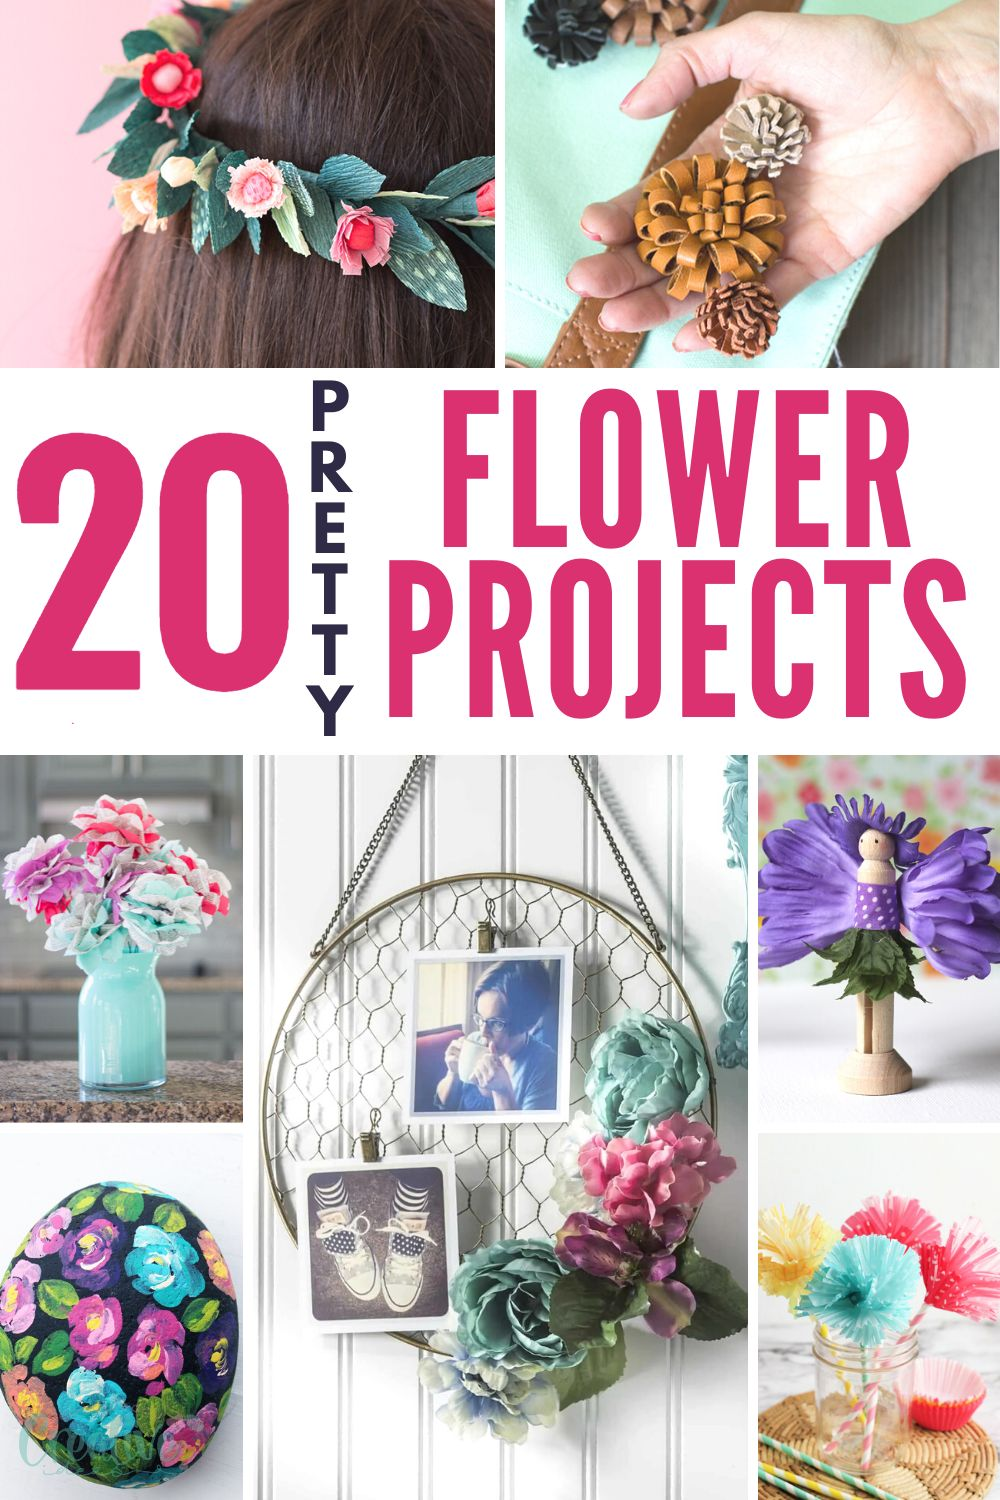 Regardless of the type of DIY you are creating, flower crafts – fake or fresh – bring a sense of life and beauty to any project! via @petroneagu